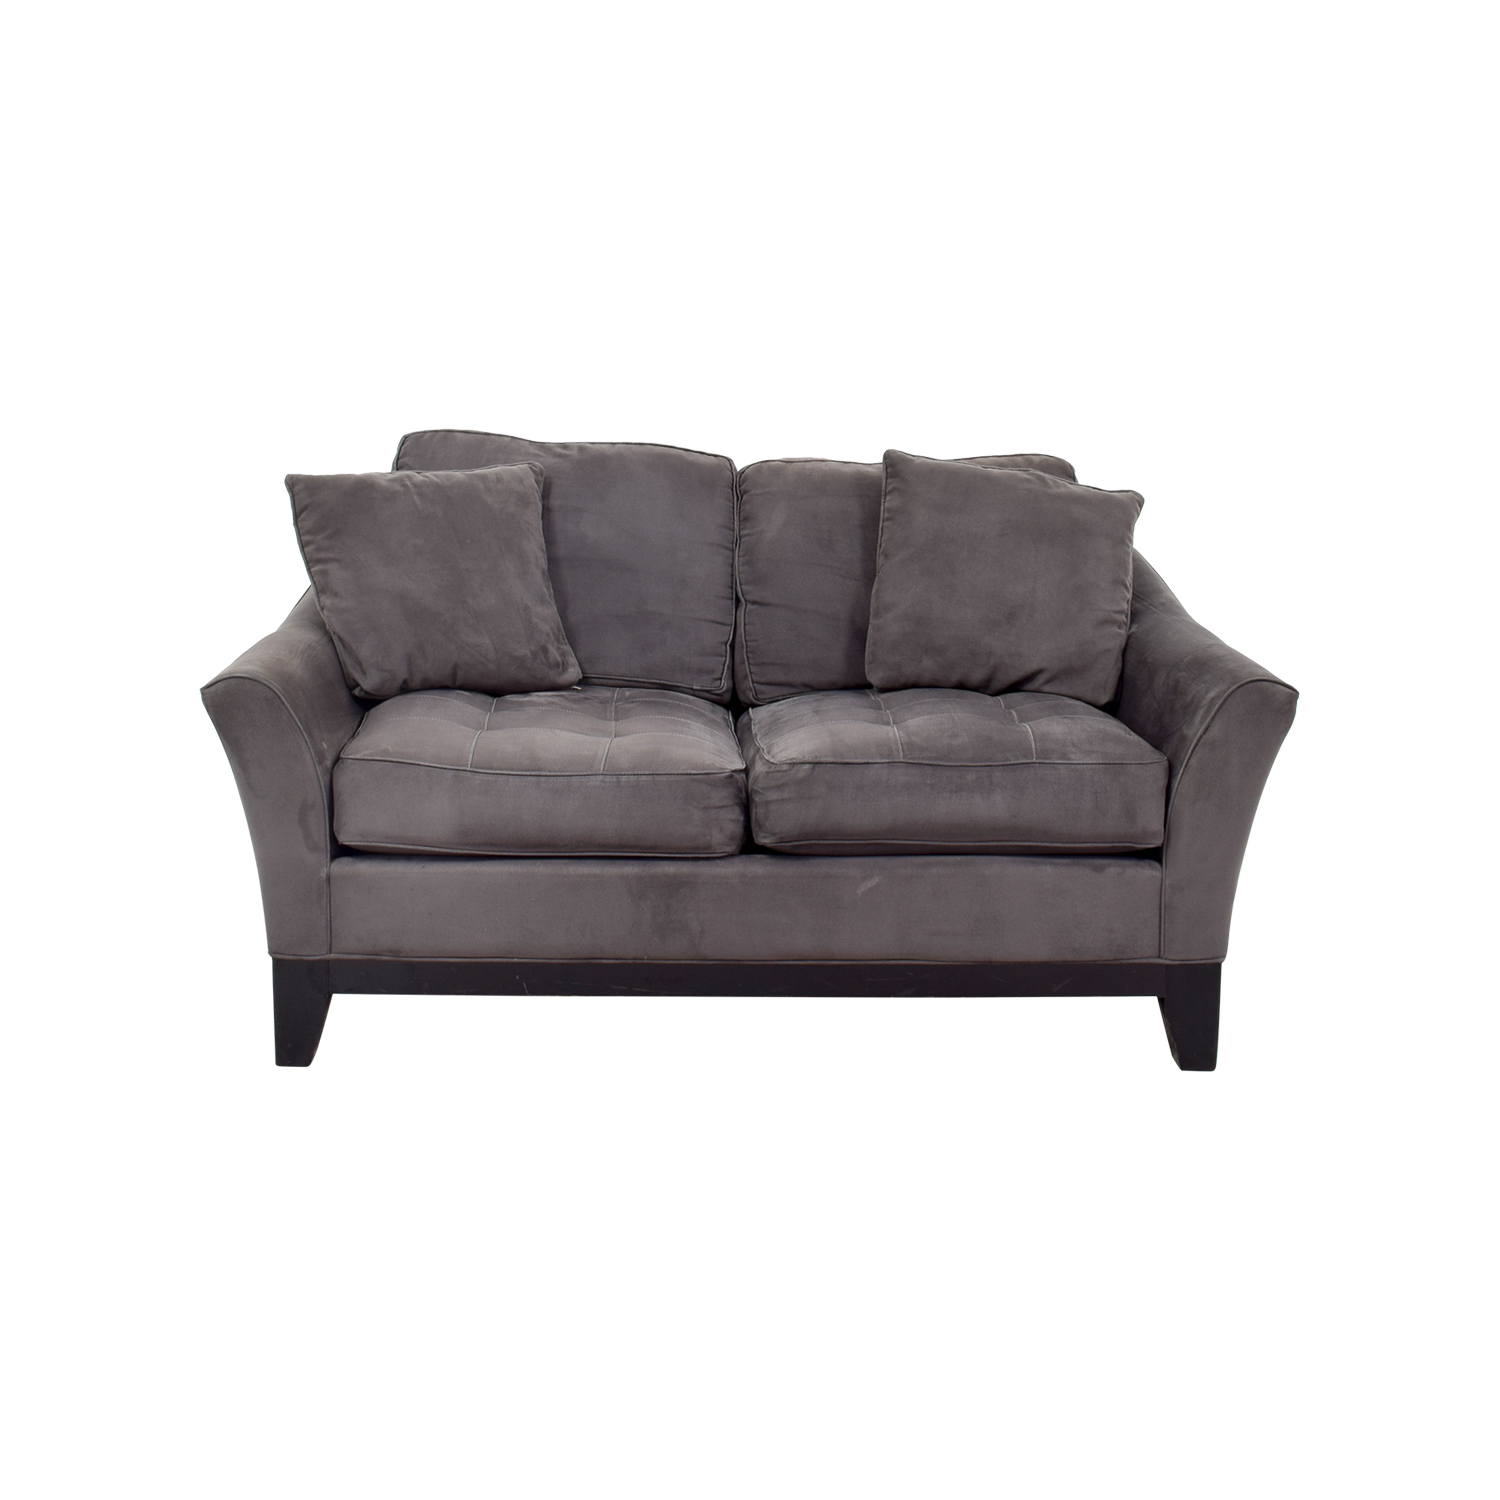 [%75% Off – Raymour & Flanigan Raymour & Flanigan Rory Slate In Well Known Rory Sofa Chairs|rory Sofa Chairs Regarding Preferred 75% Off – Raymour & Flanigan Raymour & Flanigan Rory Slate|most Recent Rory Sofa Chairs Throughout 75% Off – Raymour & Flanigan Raymour & Flanigan Rory Slate|popular 75% Off – Raymour & Flanigan Raymour & Flanigan Rory Slate Within Rory Sofa Chairs%] (View 5 of 20)